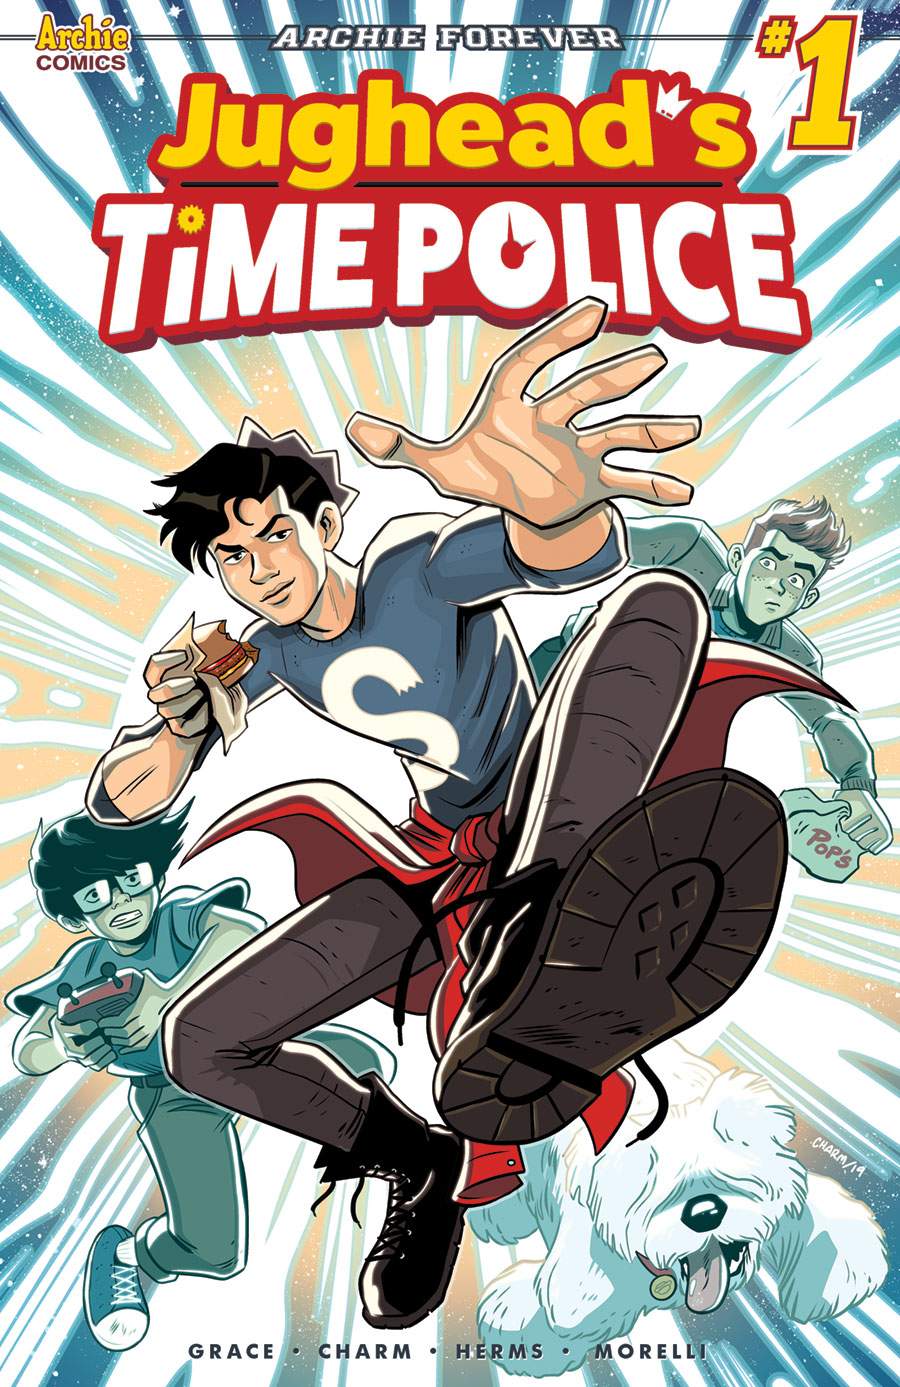 The cover for Jughead's Time Police.